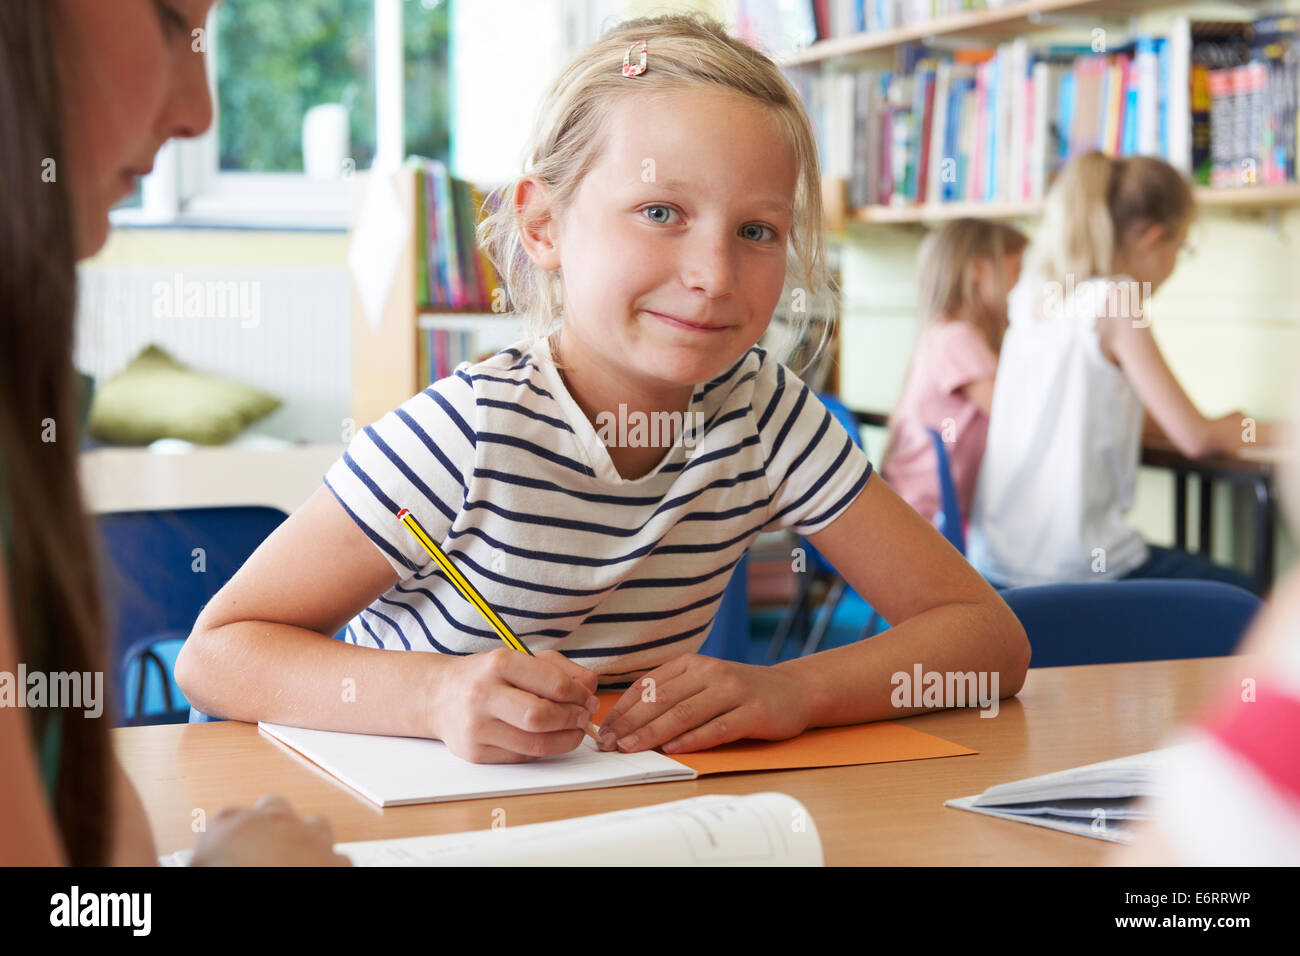 Elementary School Pupil Working At Desk In Classroom - Stock Image